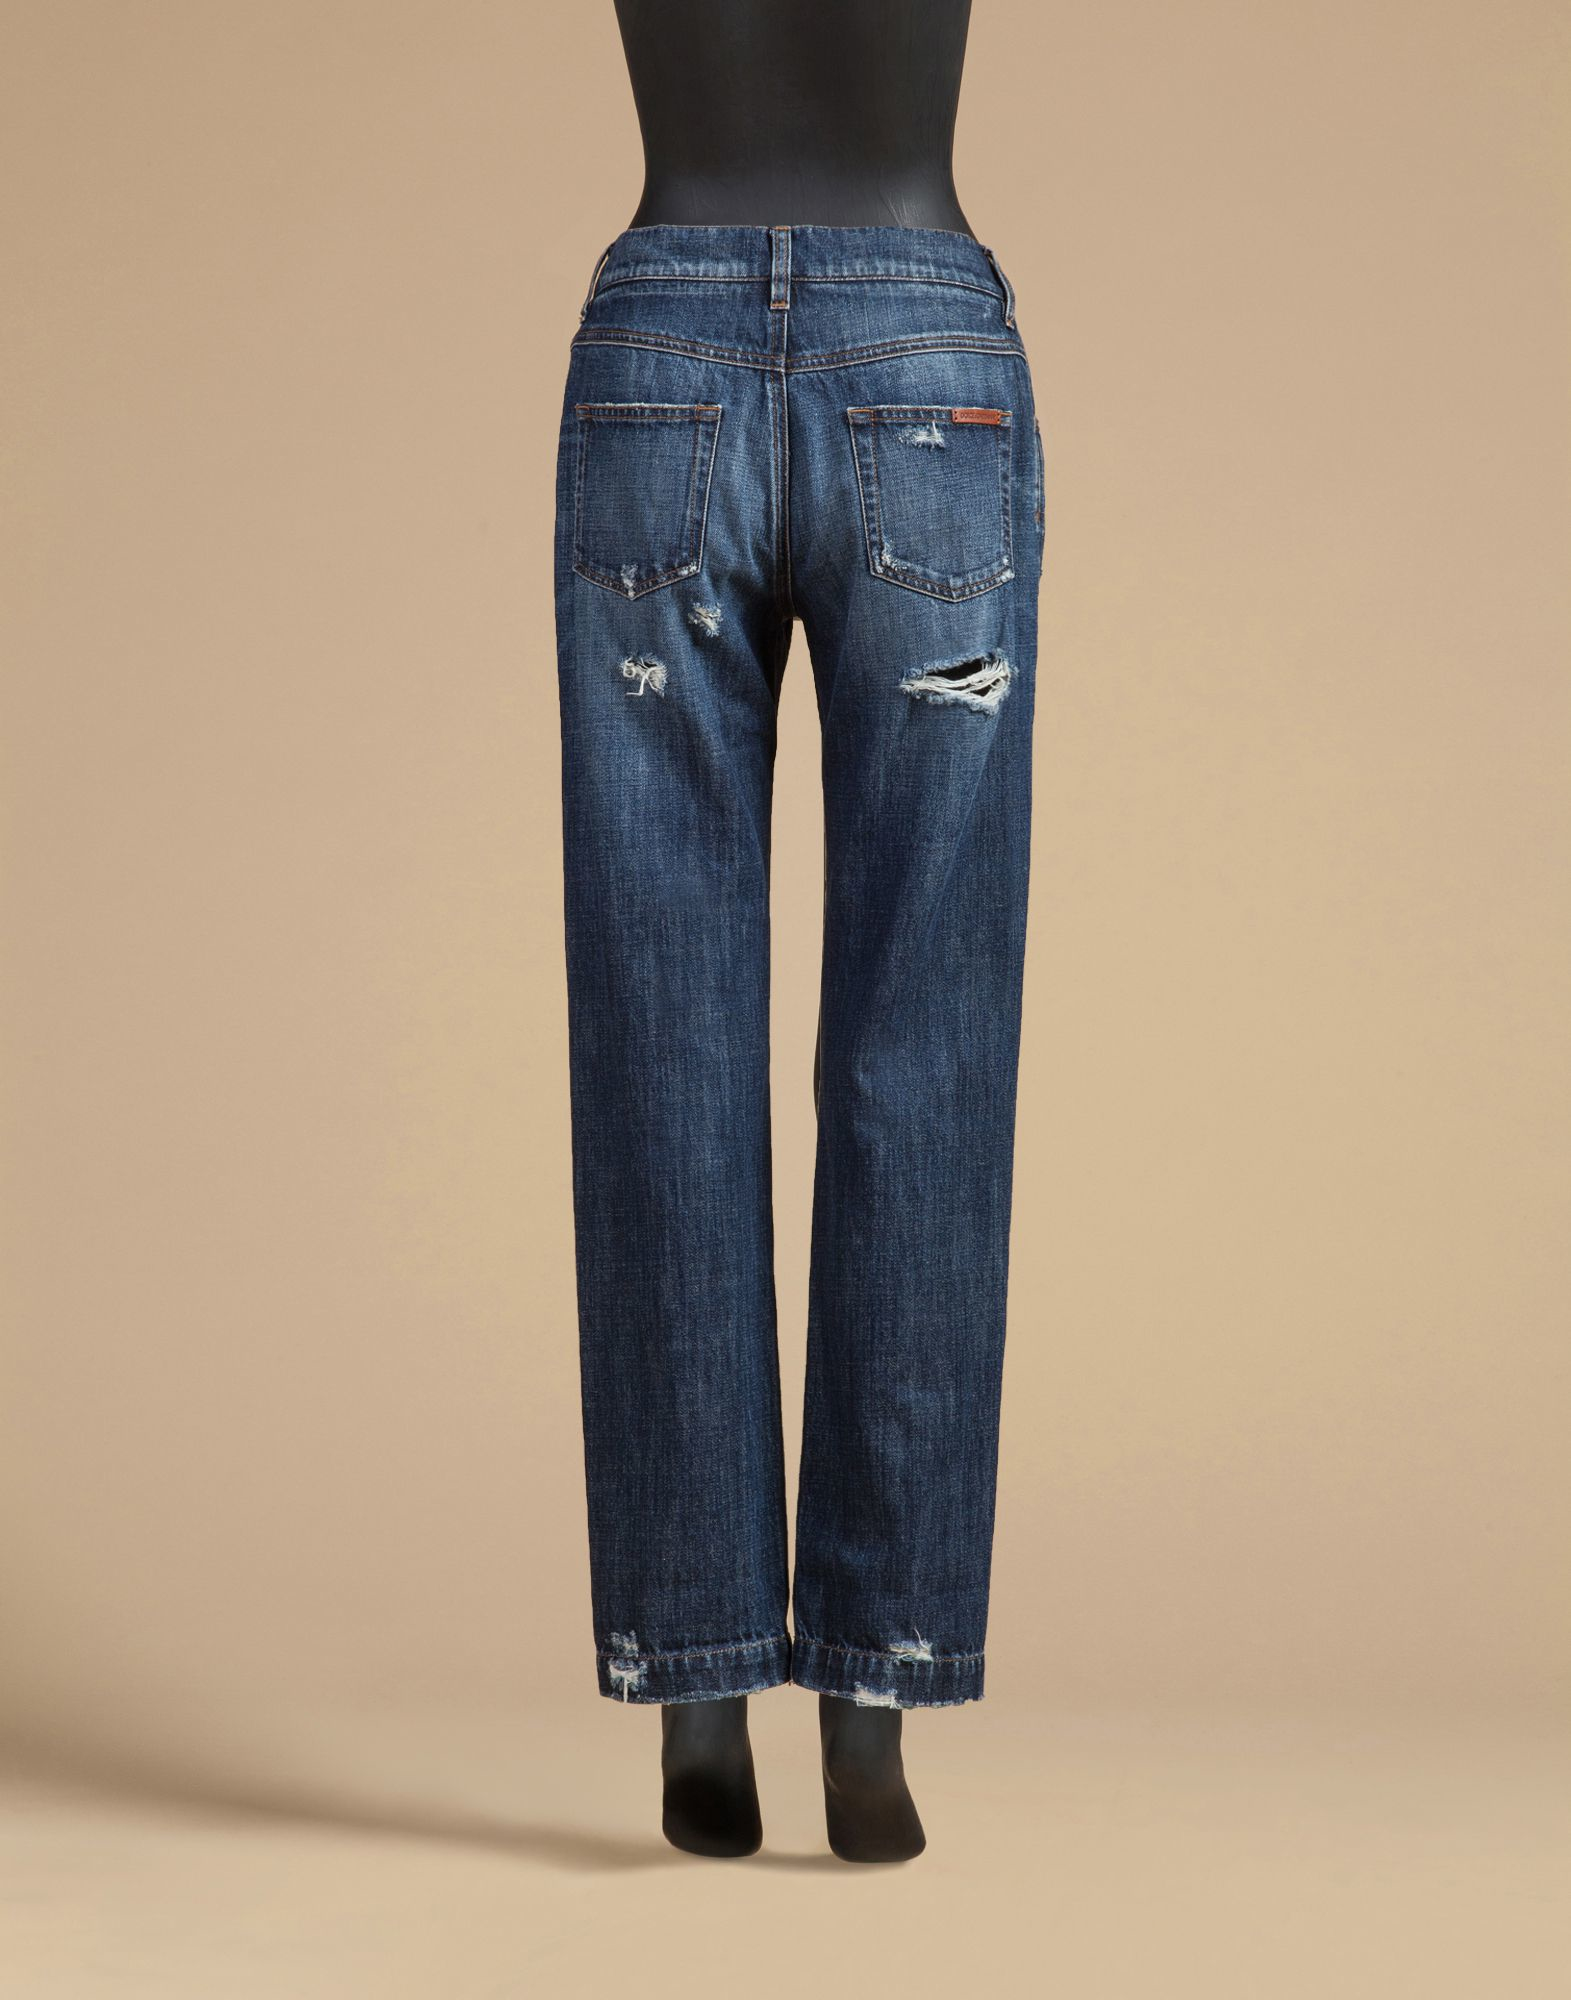 Non Stretch Jeans For Women - Jeans Am